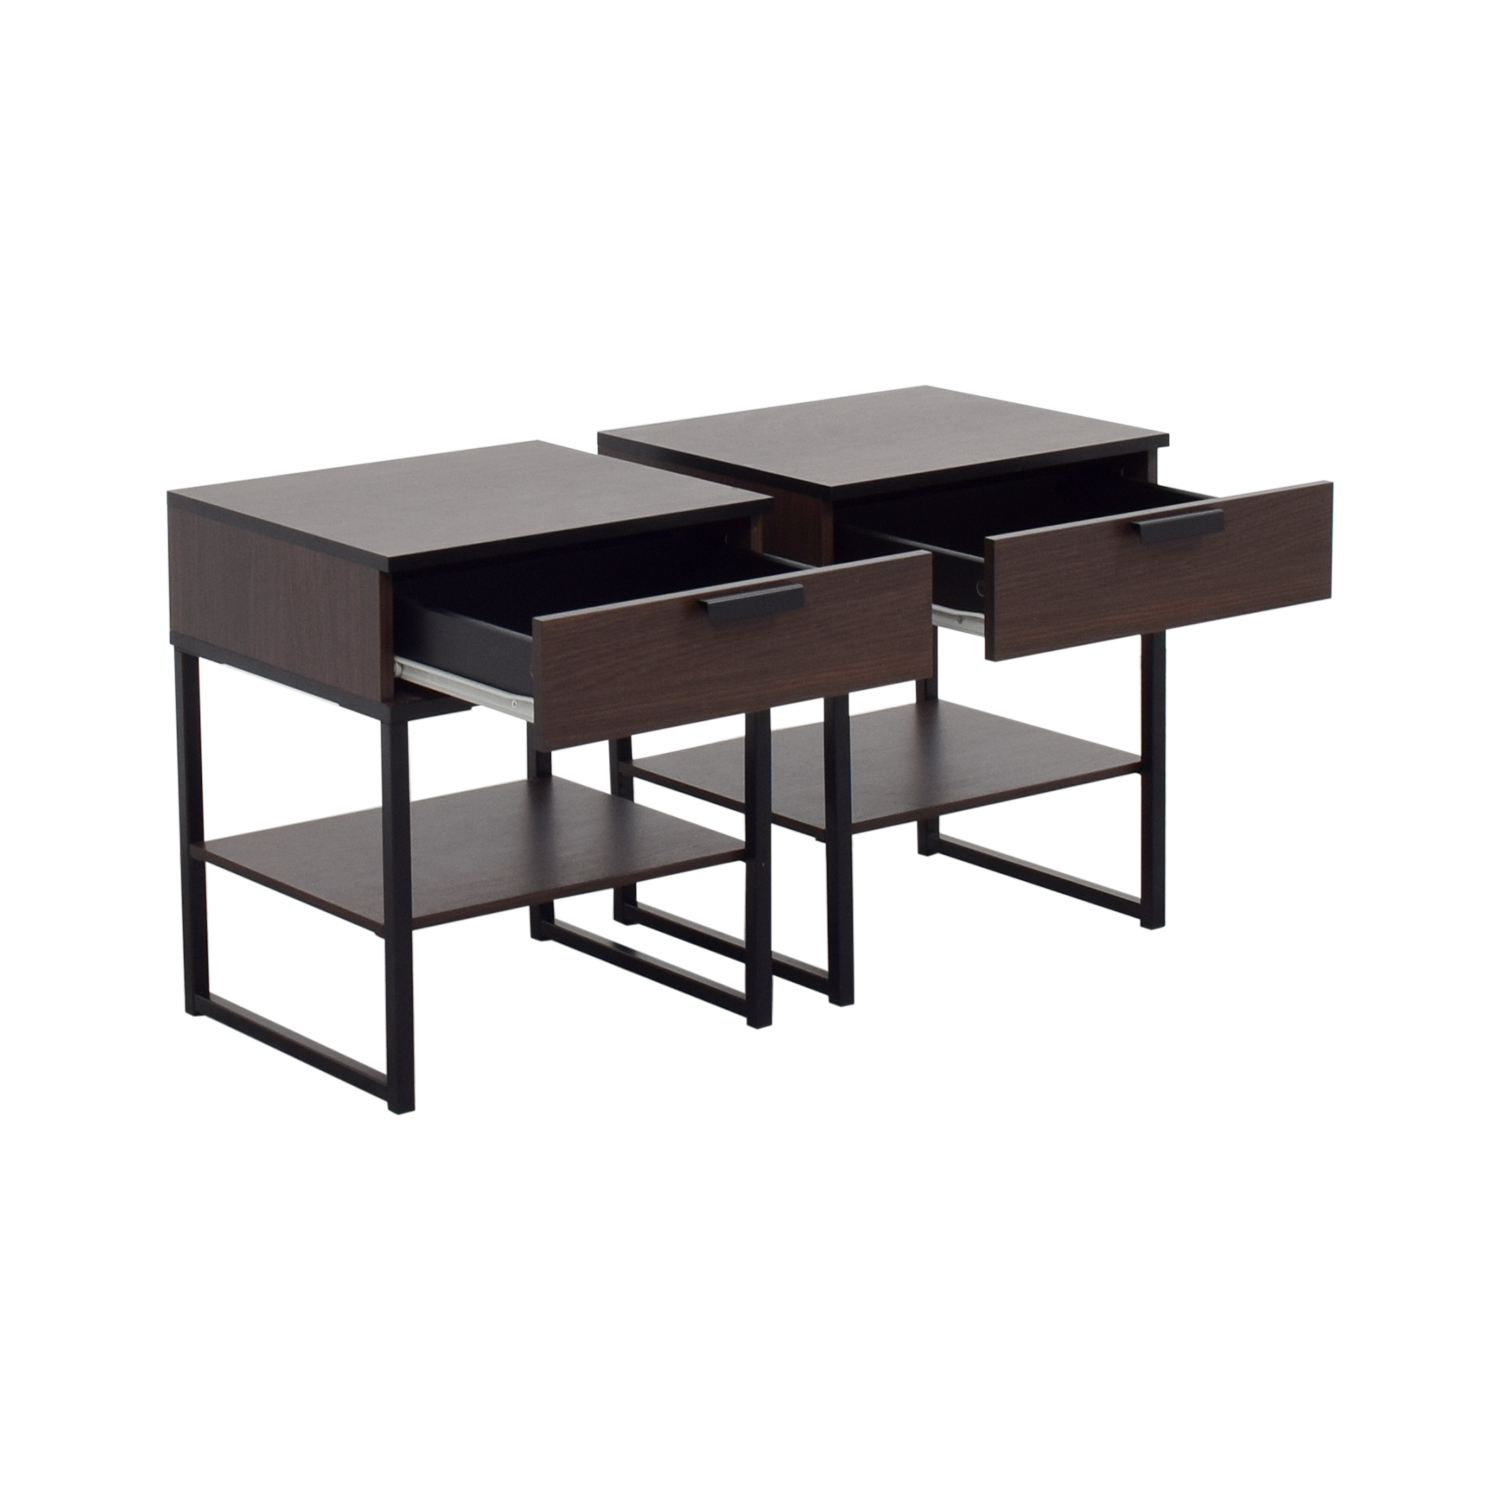 IKEA IKEA Modern End Tables price